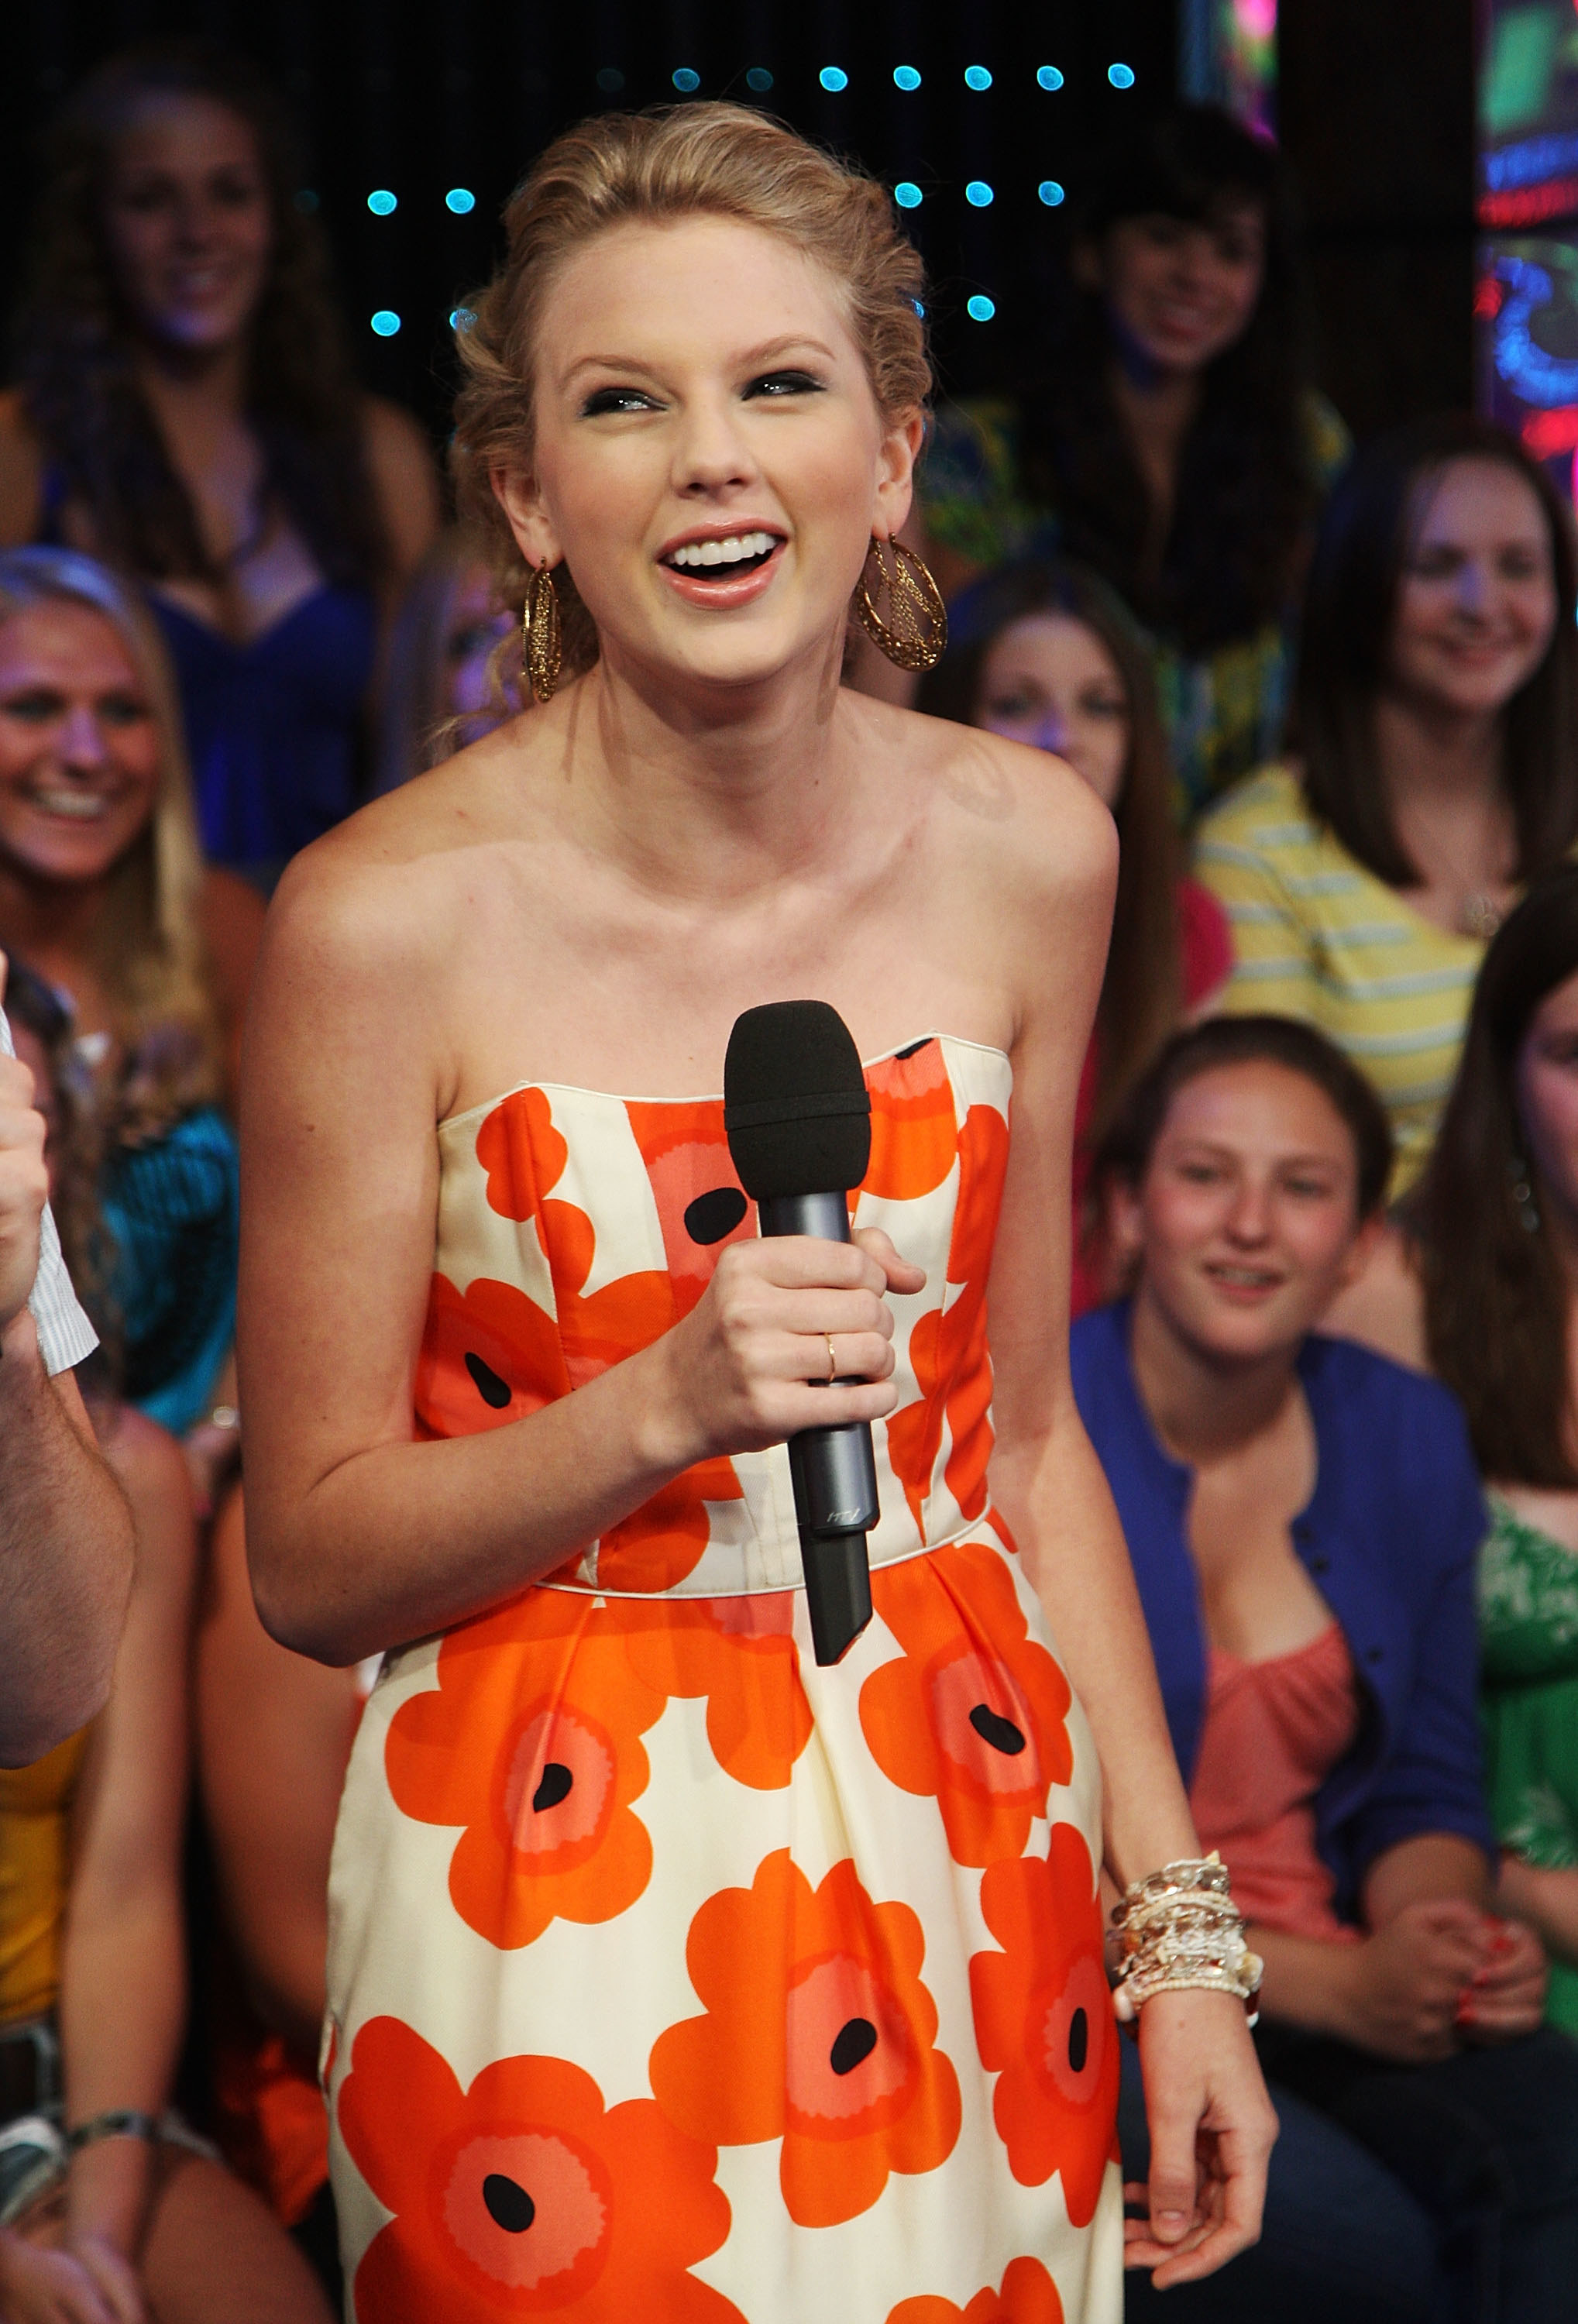 Taylor Swift in an orange floral strapless dress